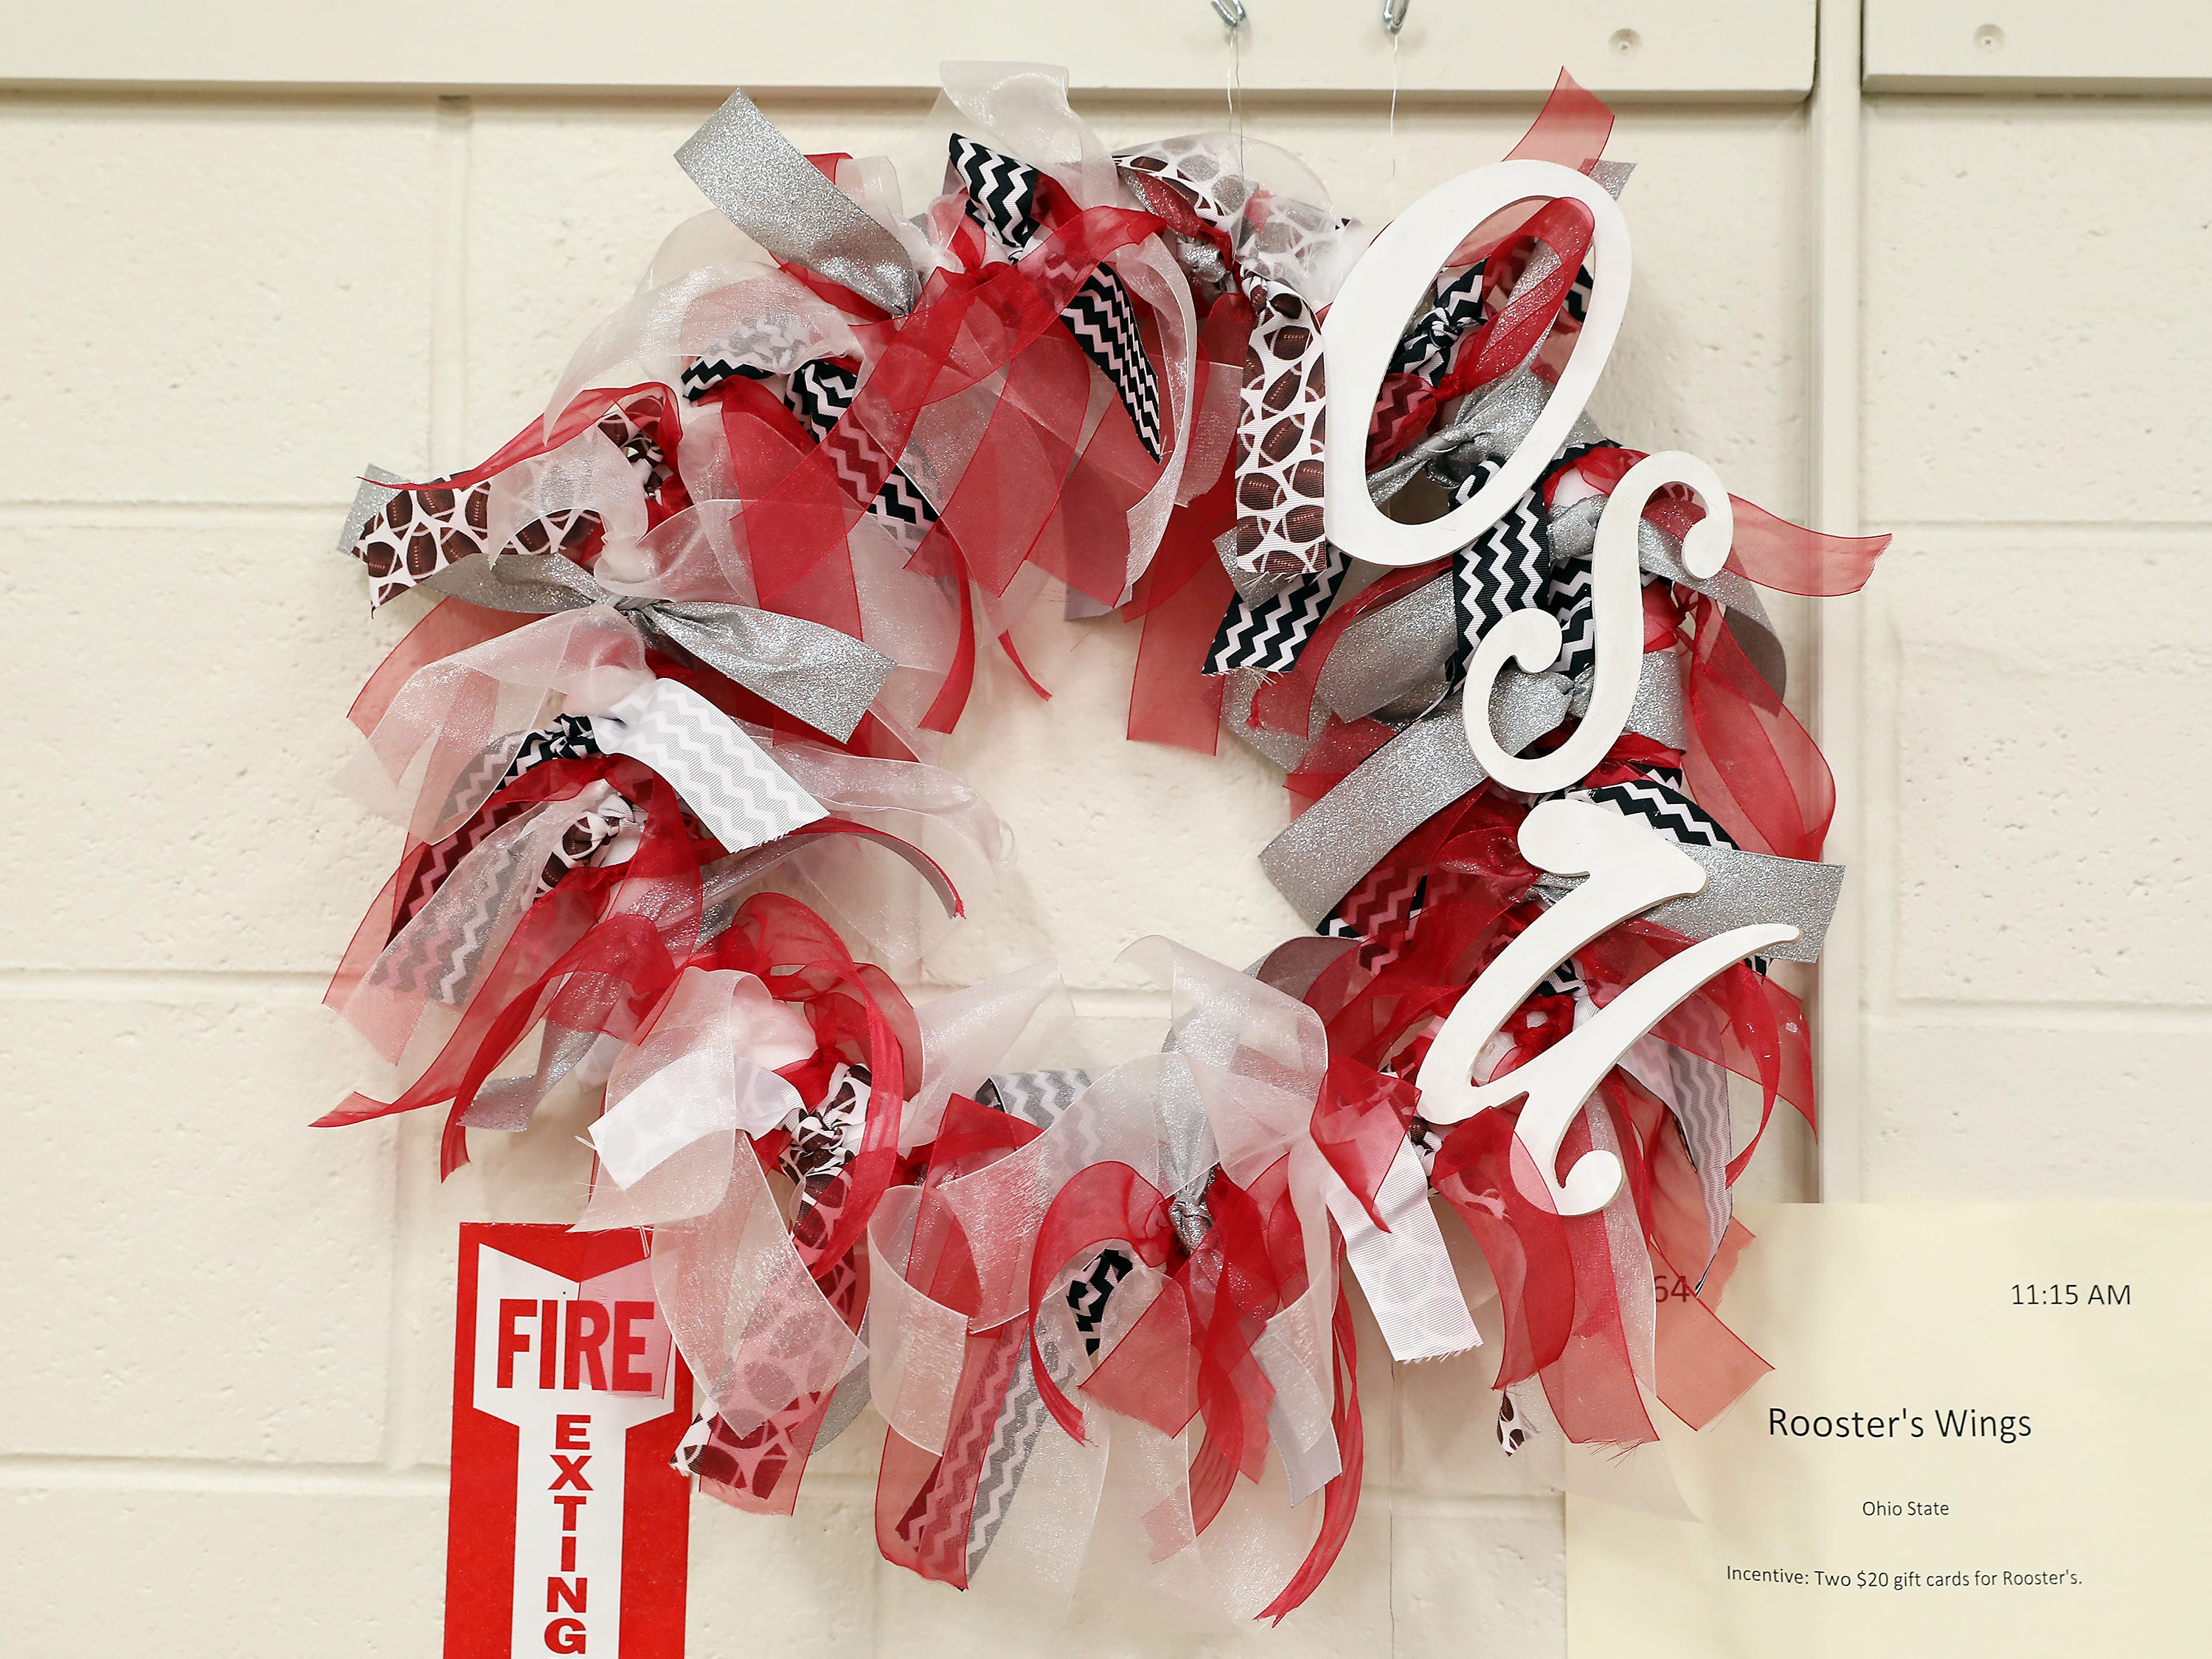 64	11:15 AM	Rooster's Wings	Wreath	Ohio State	Ohio State themed wreath.		Two $20 gift cards for Rooster's.